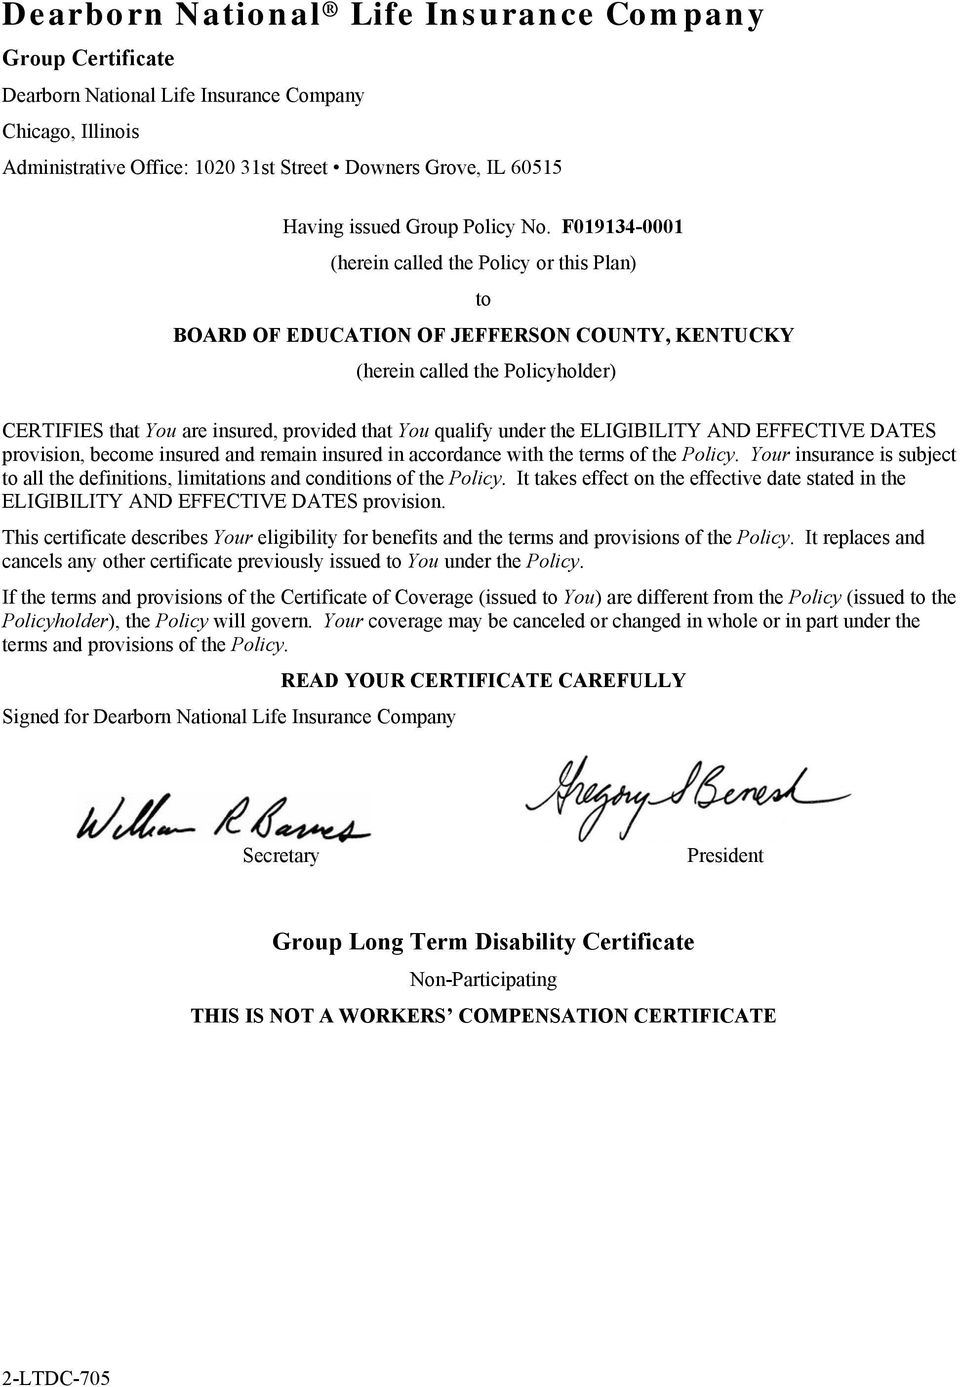 F019134-0001 (herein called the Policy or this Plan) to BOARD OF EDUCATION OF JEFFERSON COUNTY, KENTUCKY (herein called the Policyholder) CERTIFIES that You are insured, provided that You qualify